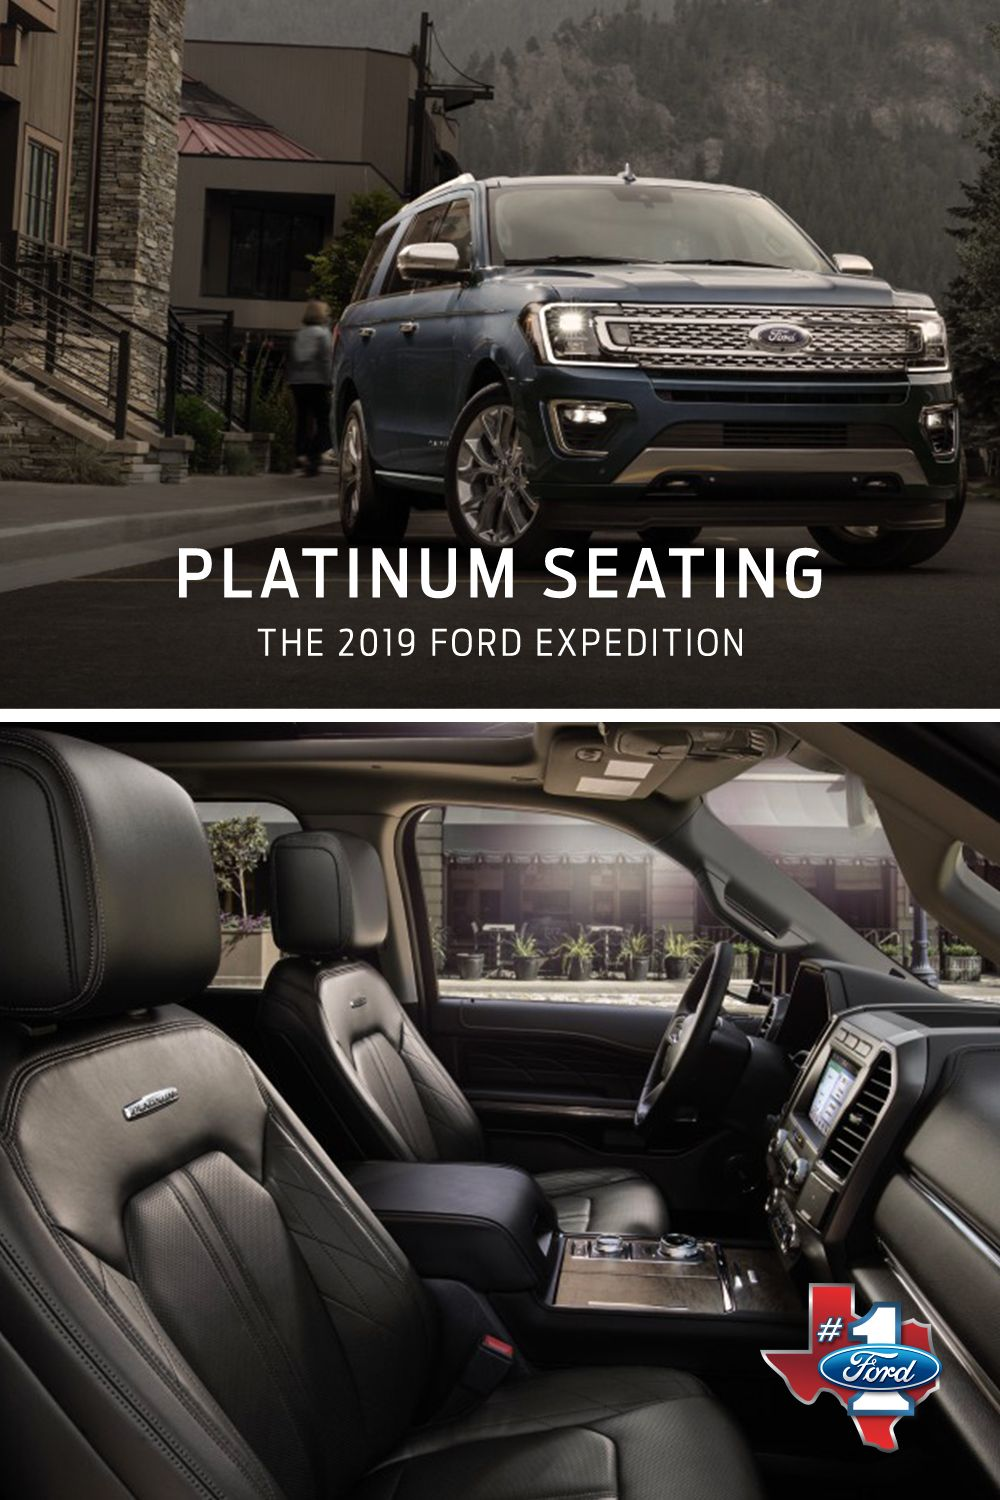 Pin By Oscar Perez On Custom Hot Rod Interiors Ford Expedition